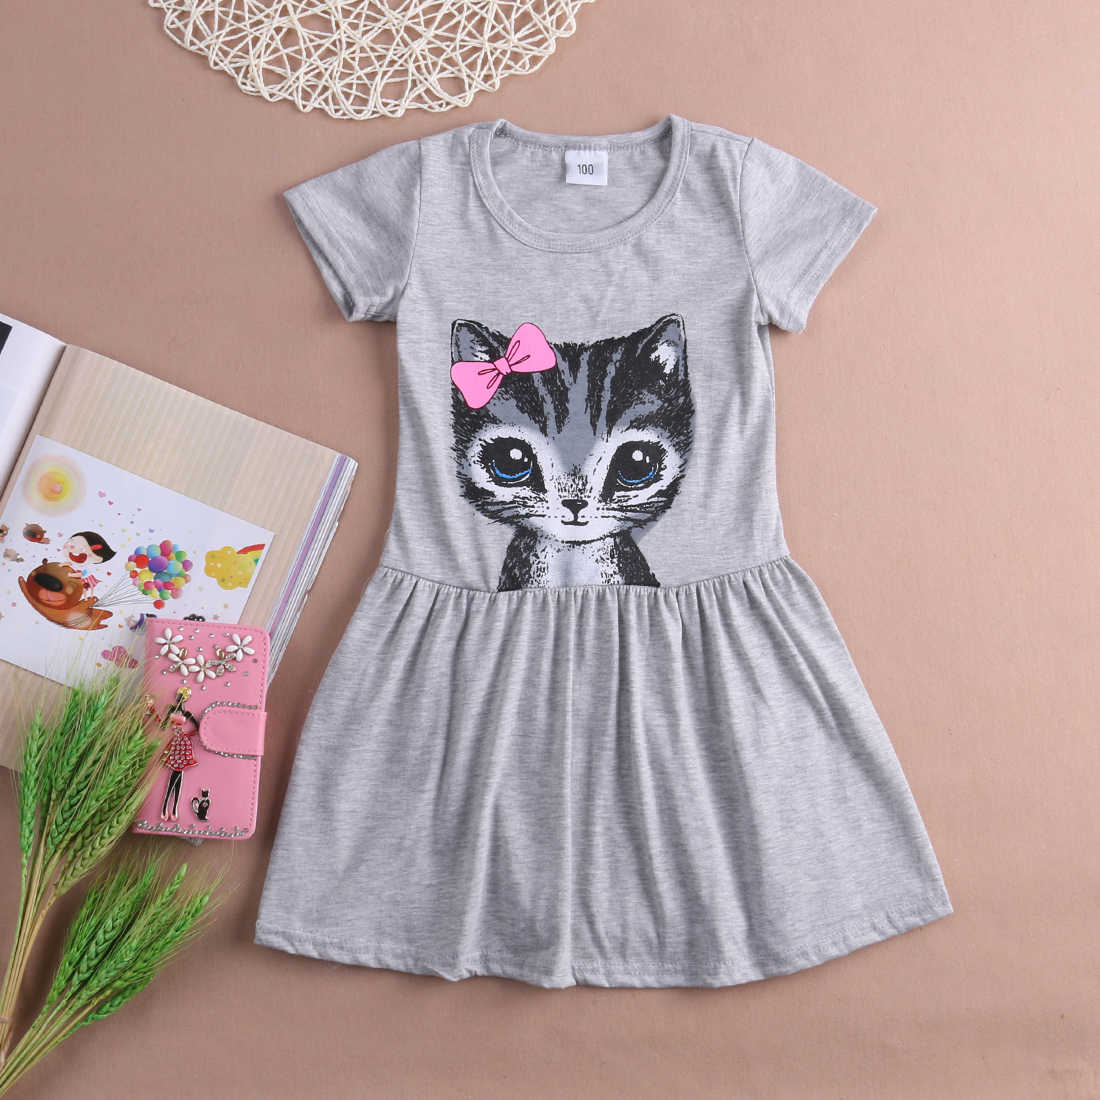 3b3dbf91 Detail Feedback Questions about 2016 Pink/Grey Baby Kids Girls Cute ...